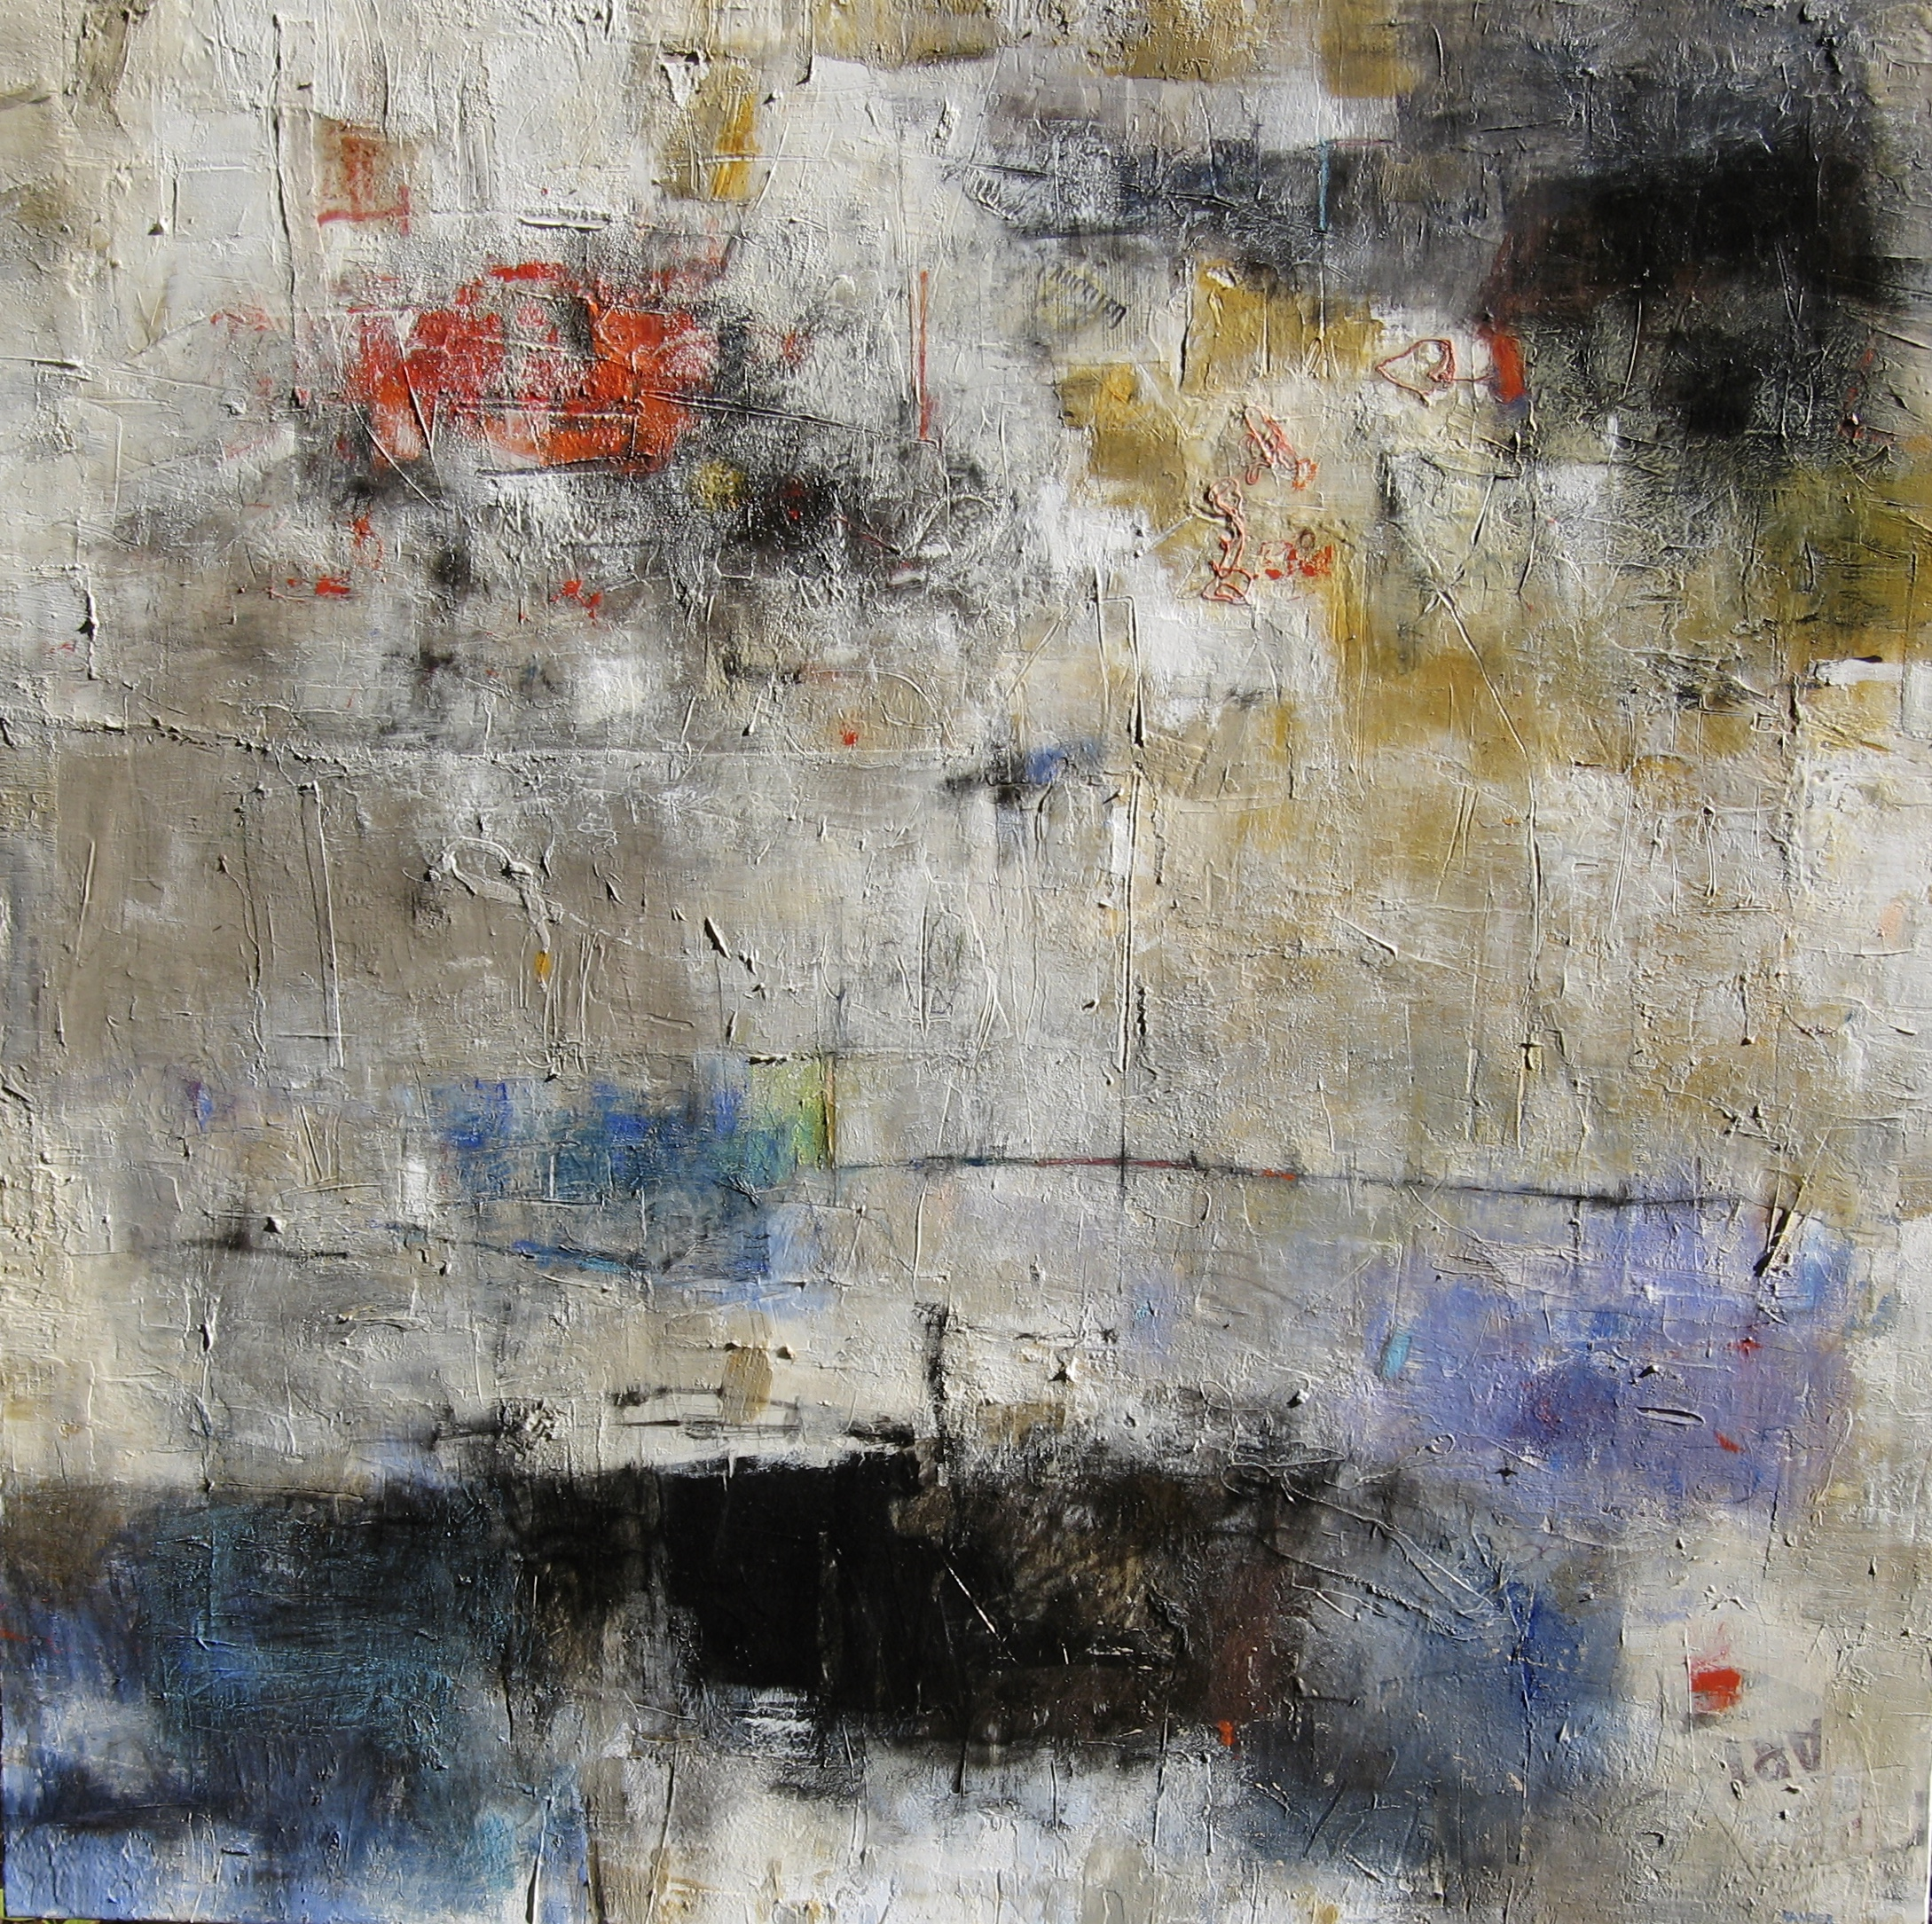 mixed media on canvas by tamar kander, Impending